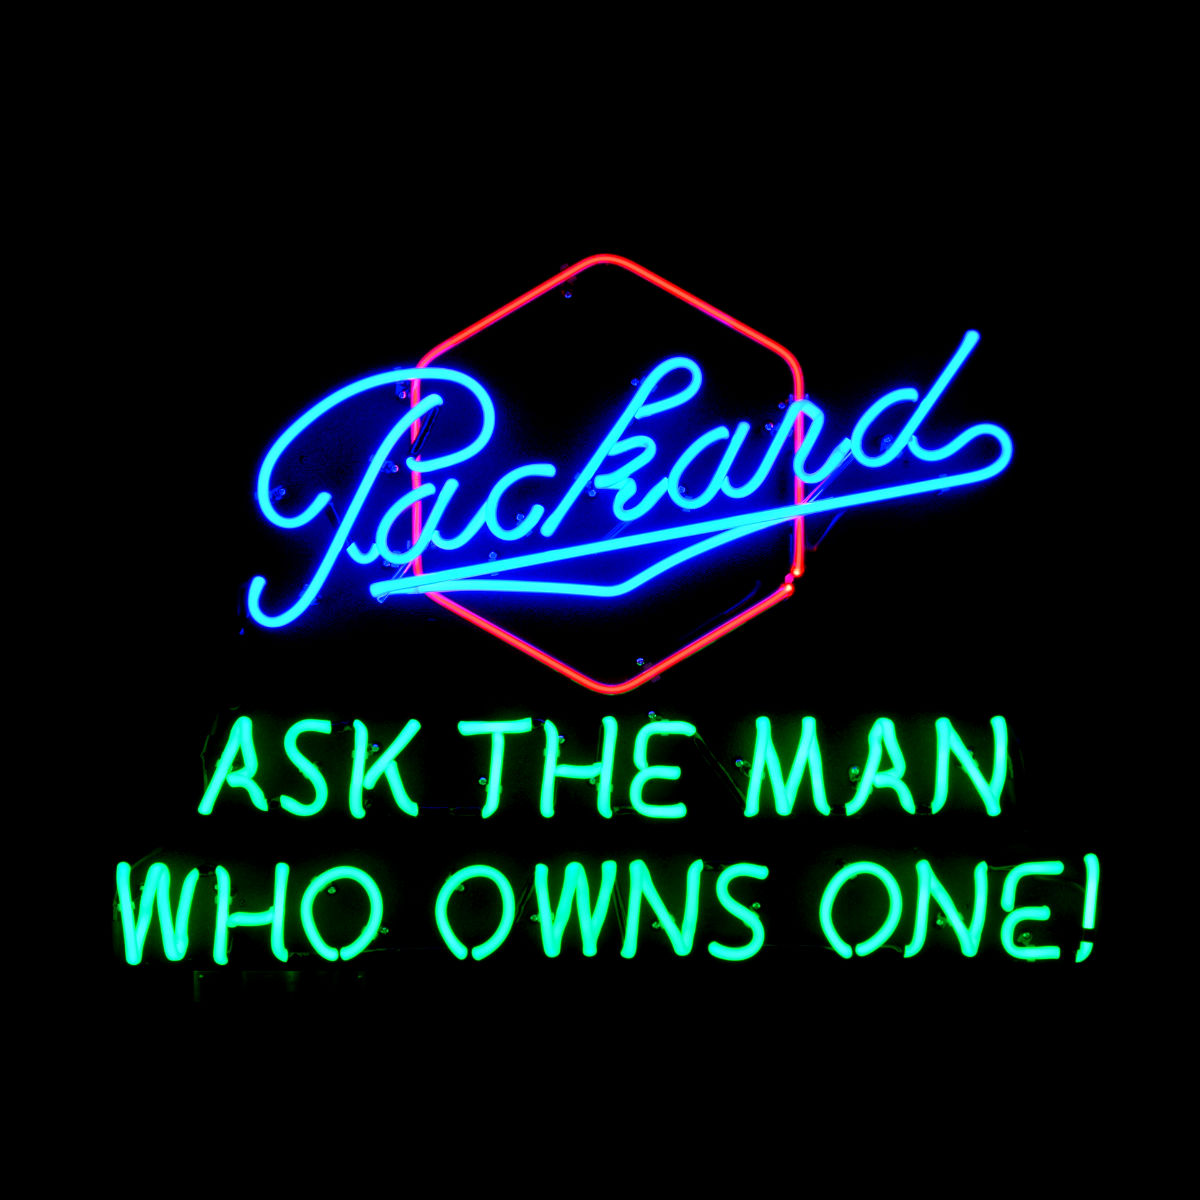 re-sized photo - Packard - Ask The Man Who Owns One - custom Packard neon.jpg